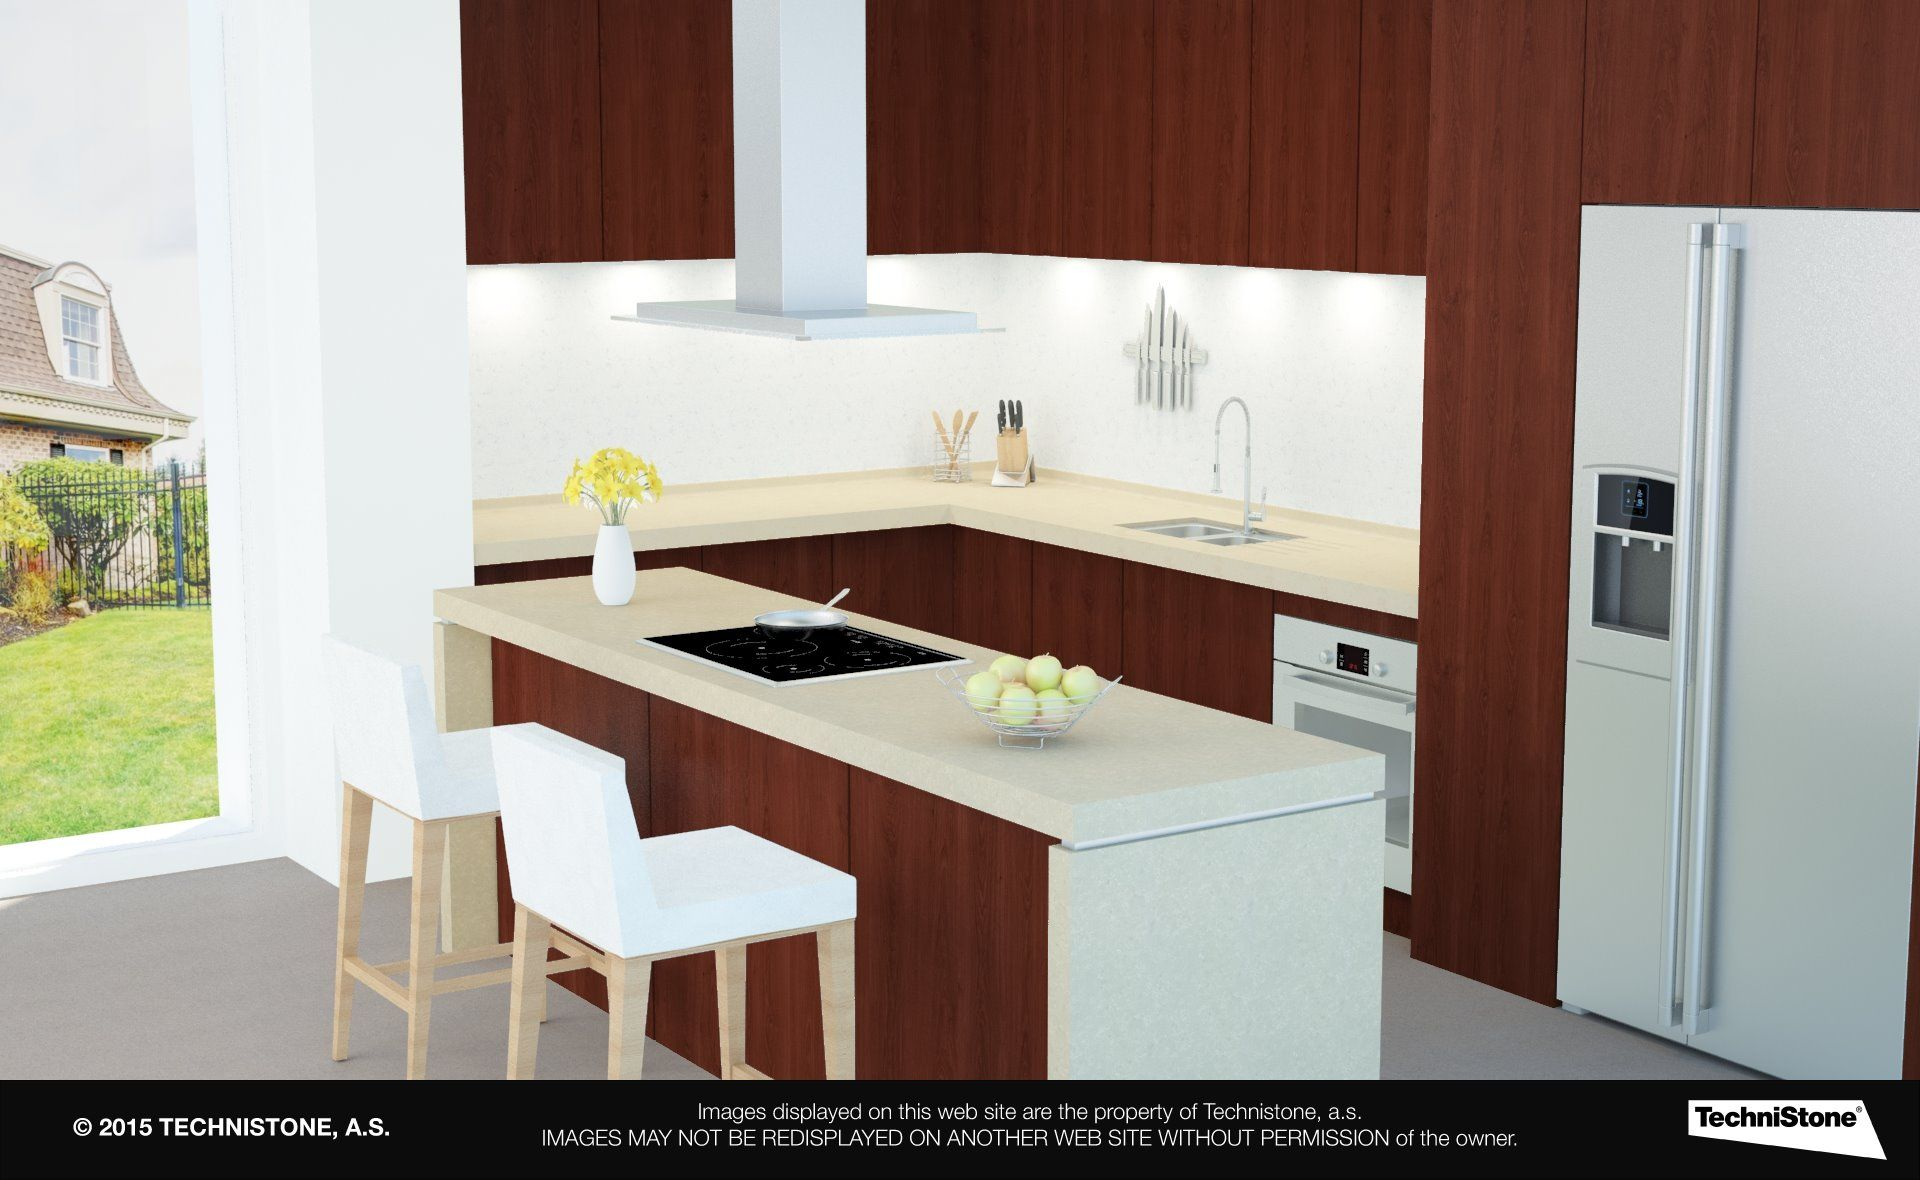 Technistone Is A Beautiful Line Of Quartz With The Help Of Technistone Visualizer We Have